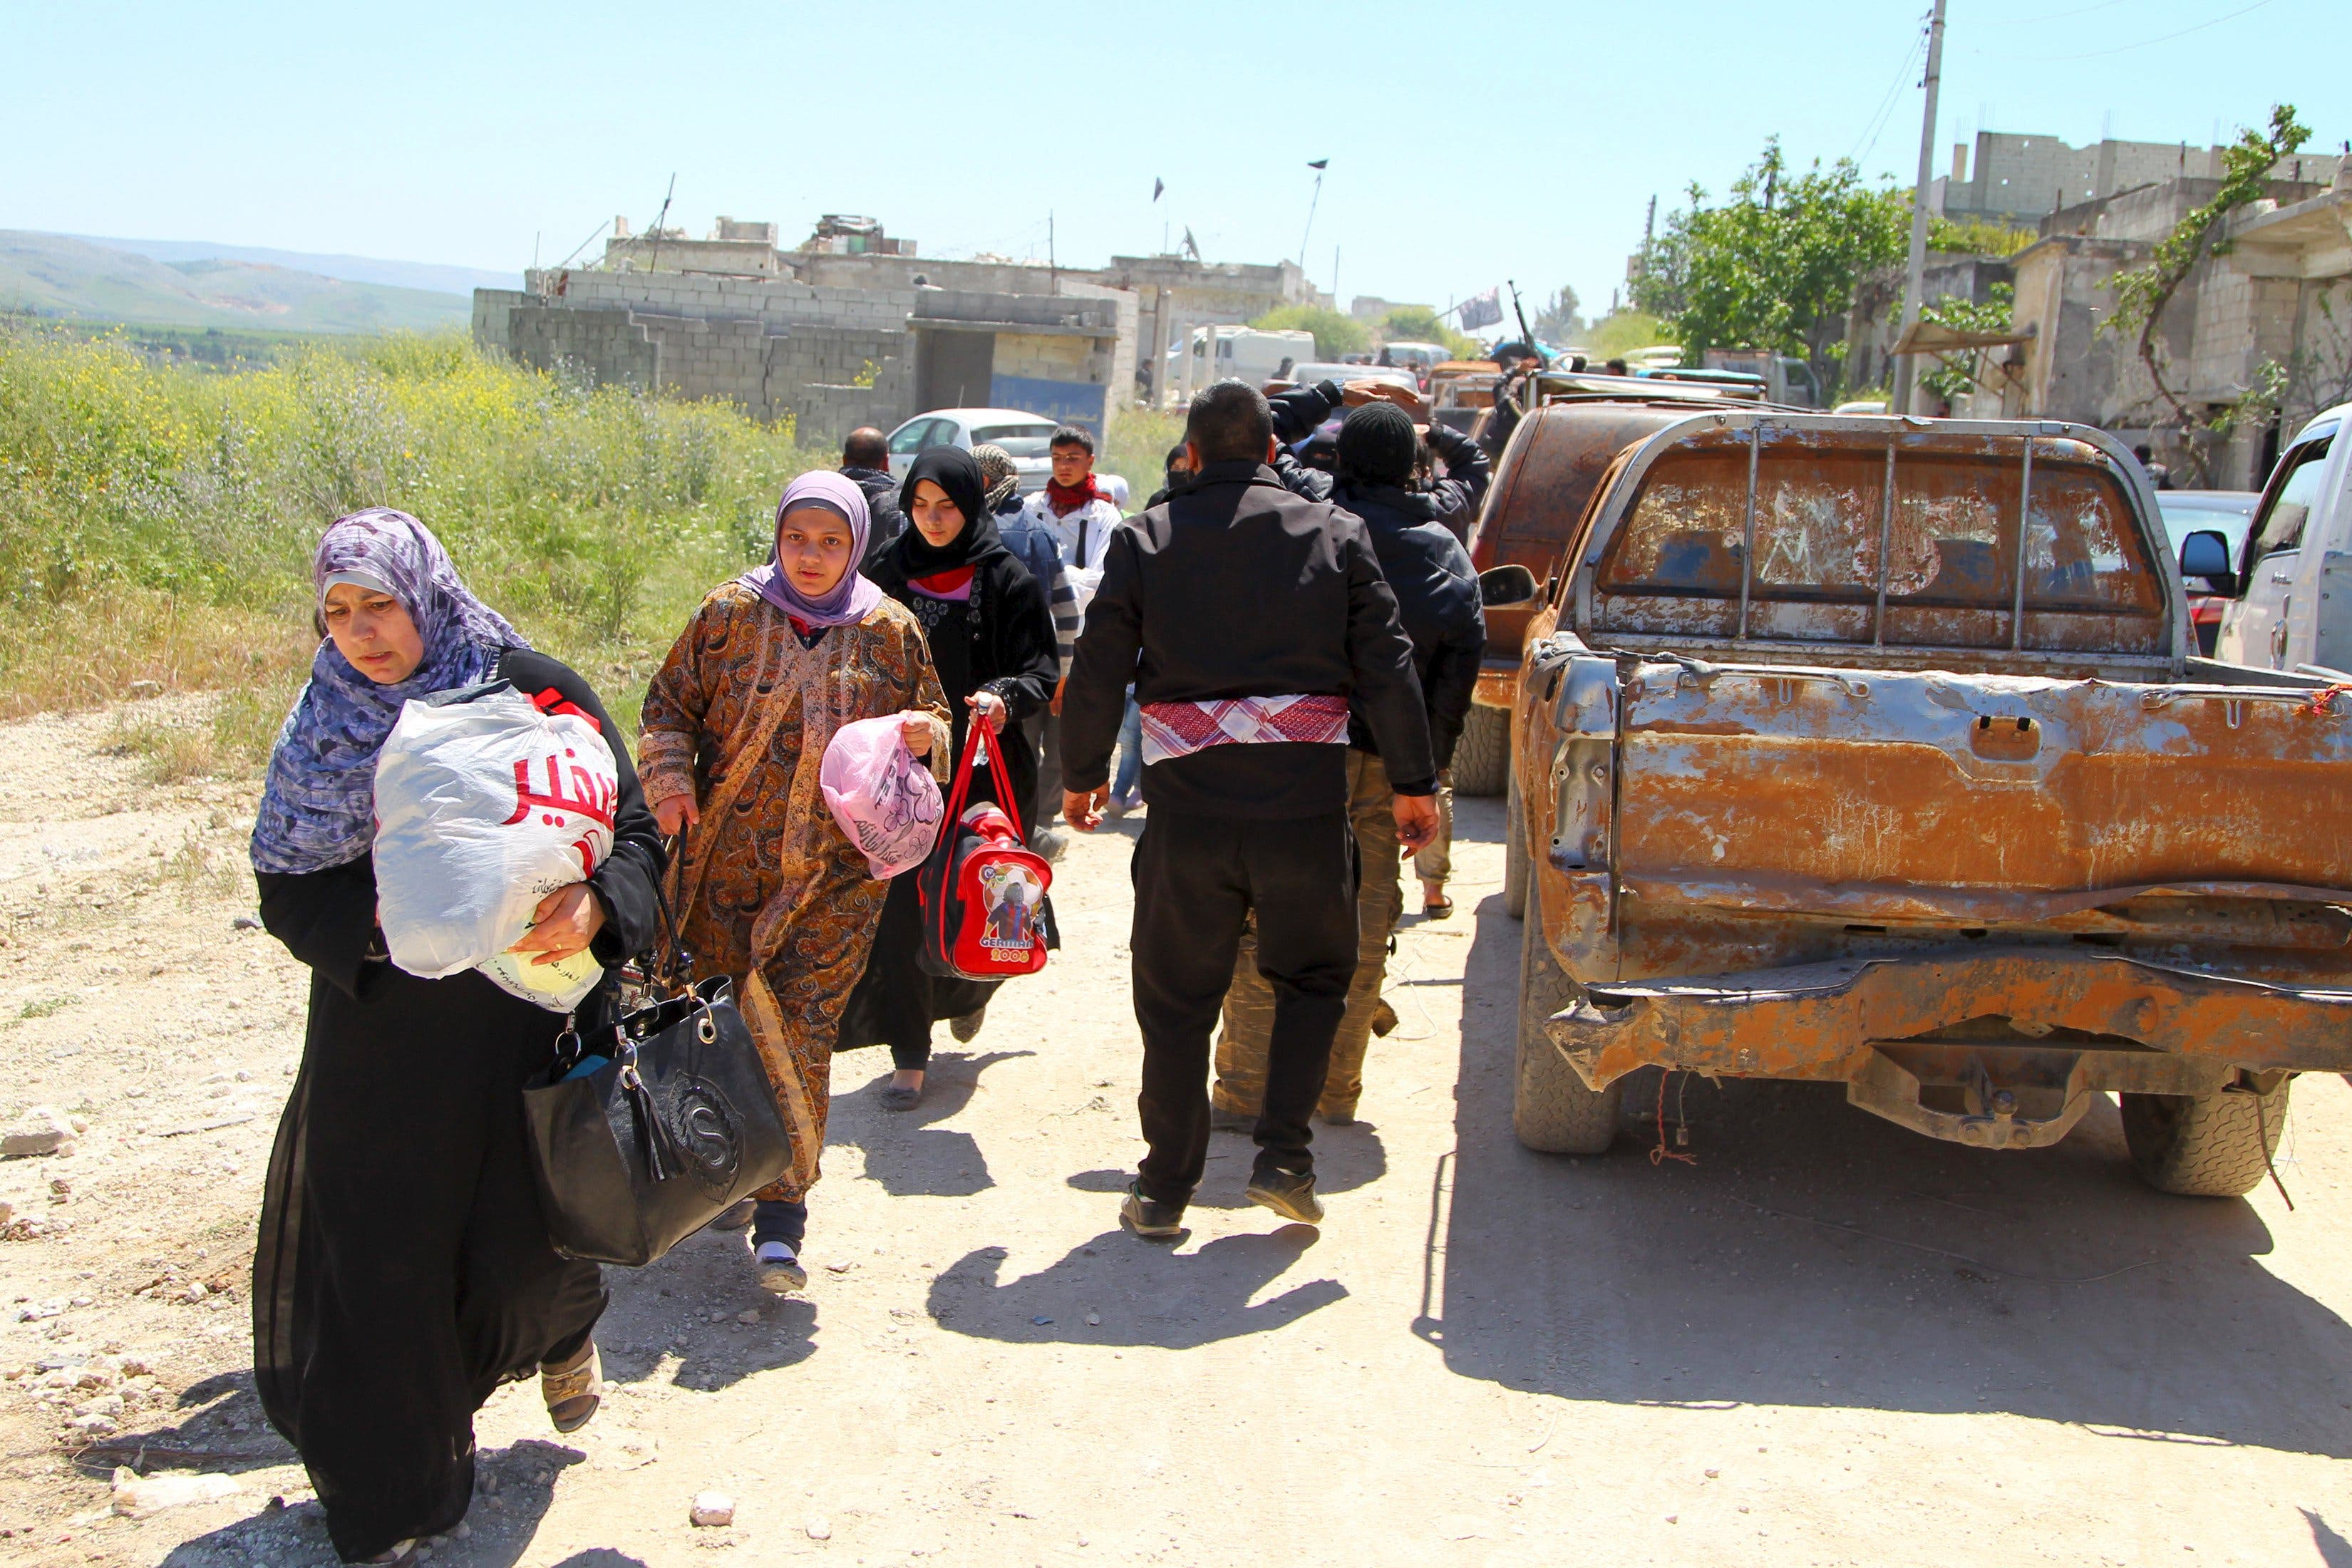 Residents flee Jisr al-Shughour town after rebels took control of the area April 25, 2015. Reuters